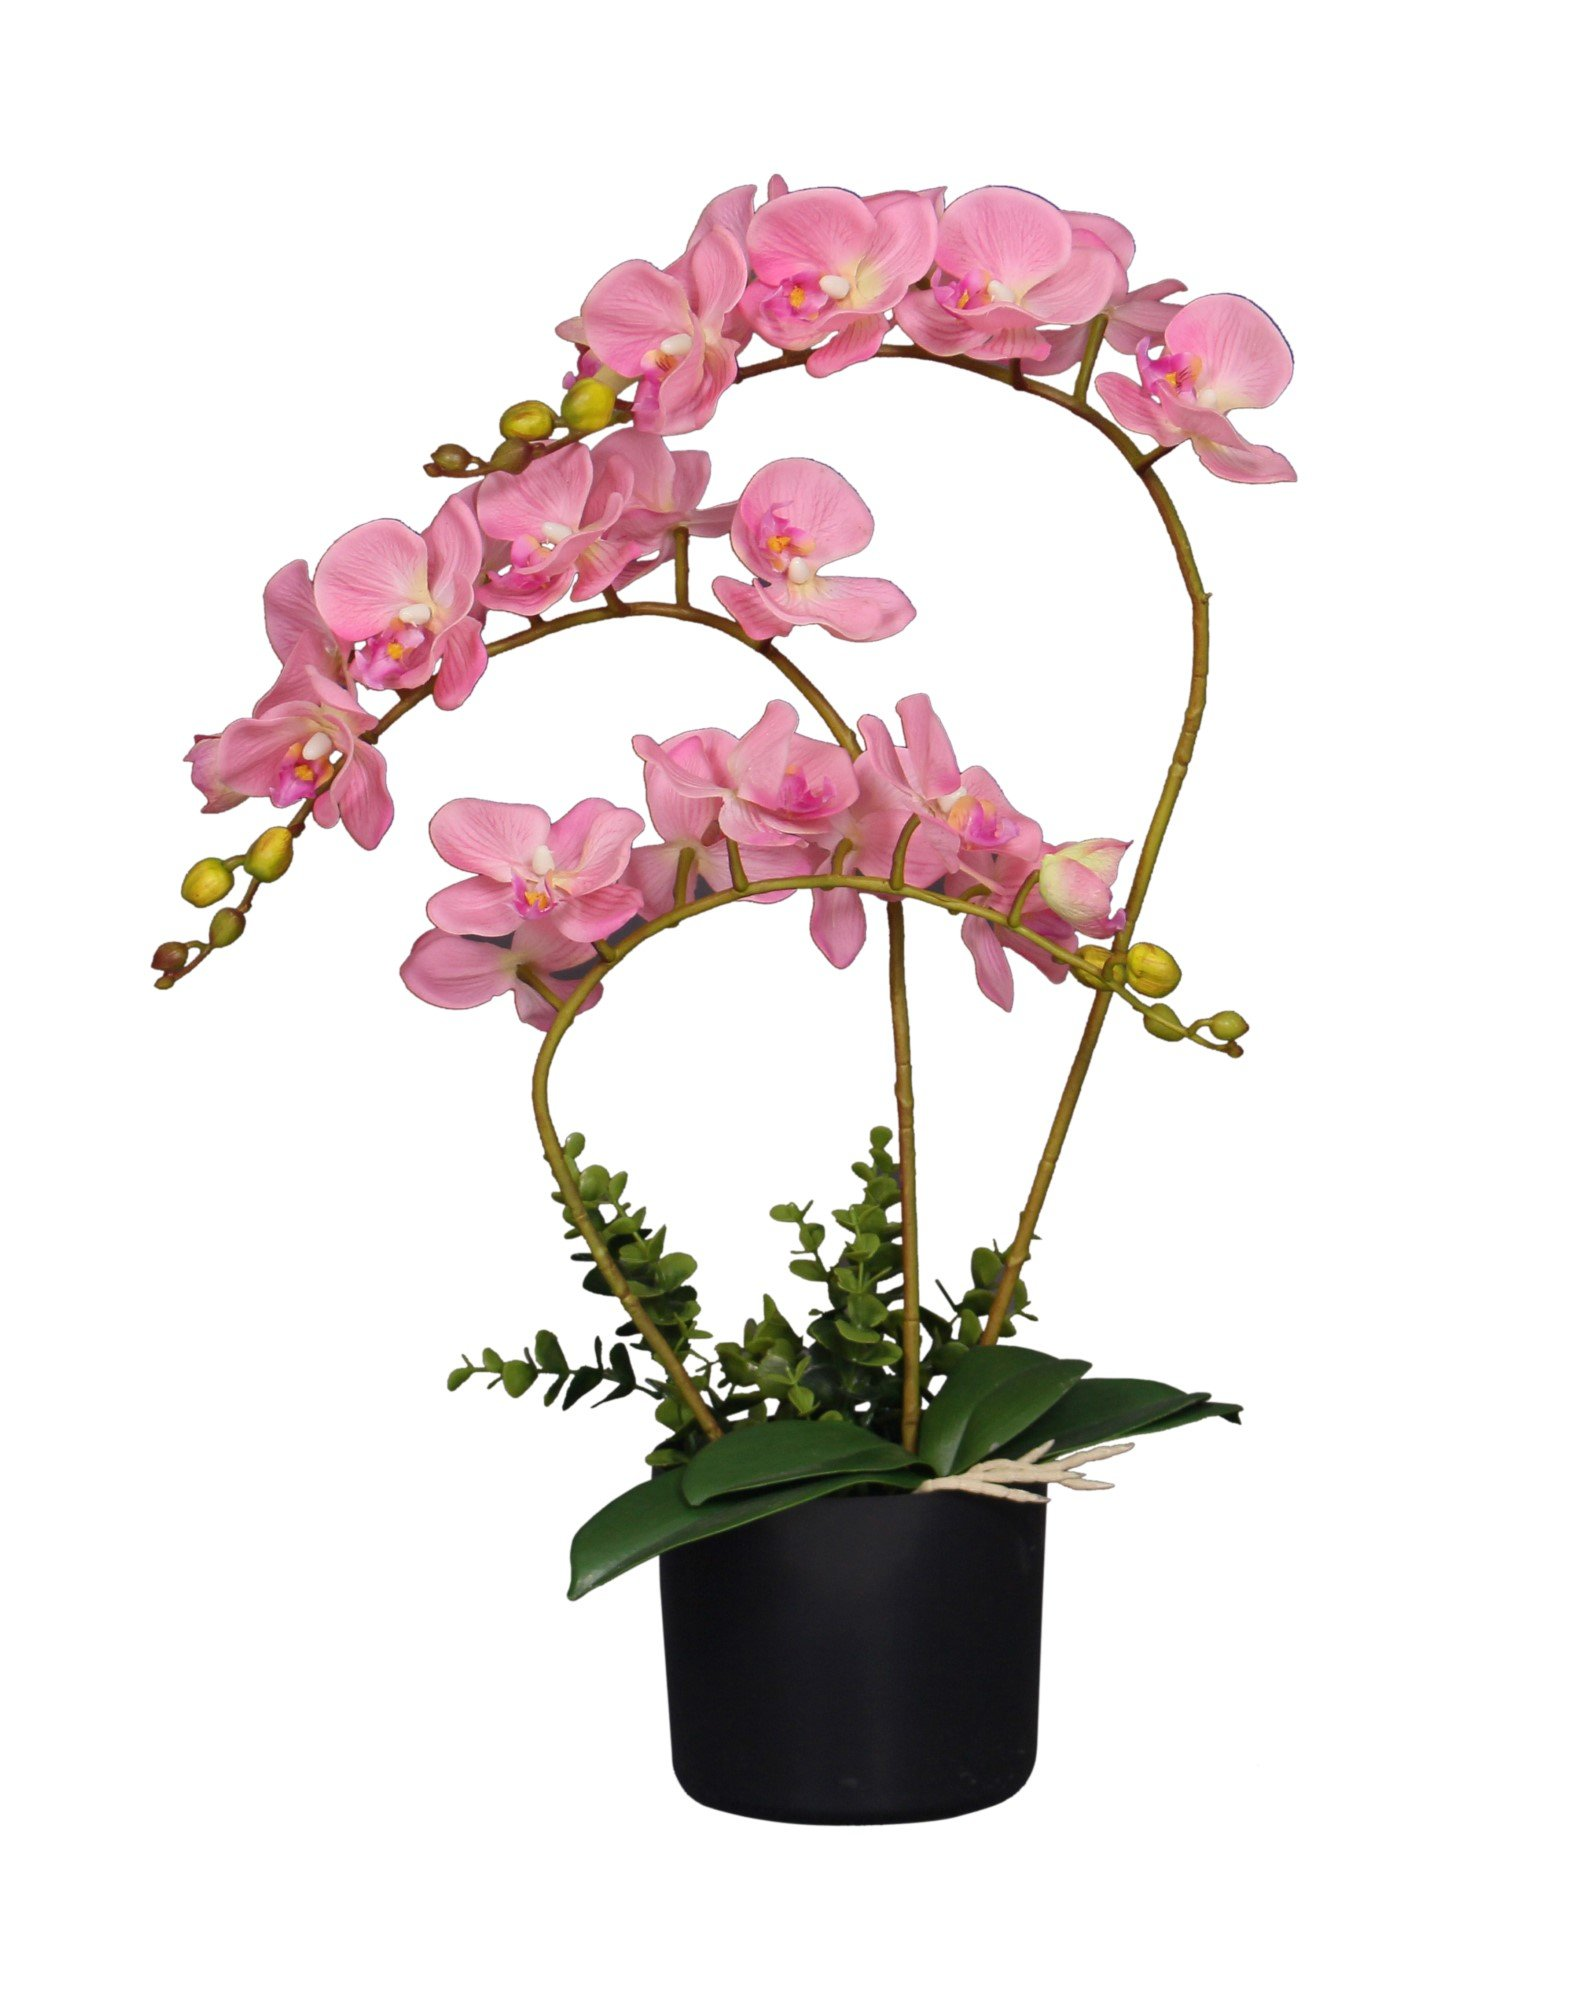 AMERIQUE Gorgeous and Unique 2' Artificial Silk Flower Plant, with Nursery Plastic Pot, Feel Real Technology, Super Quality, White Orchid